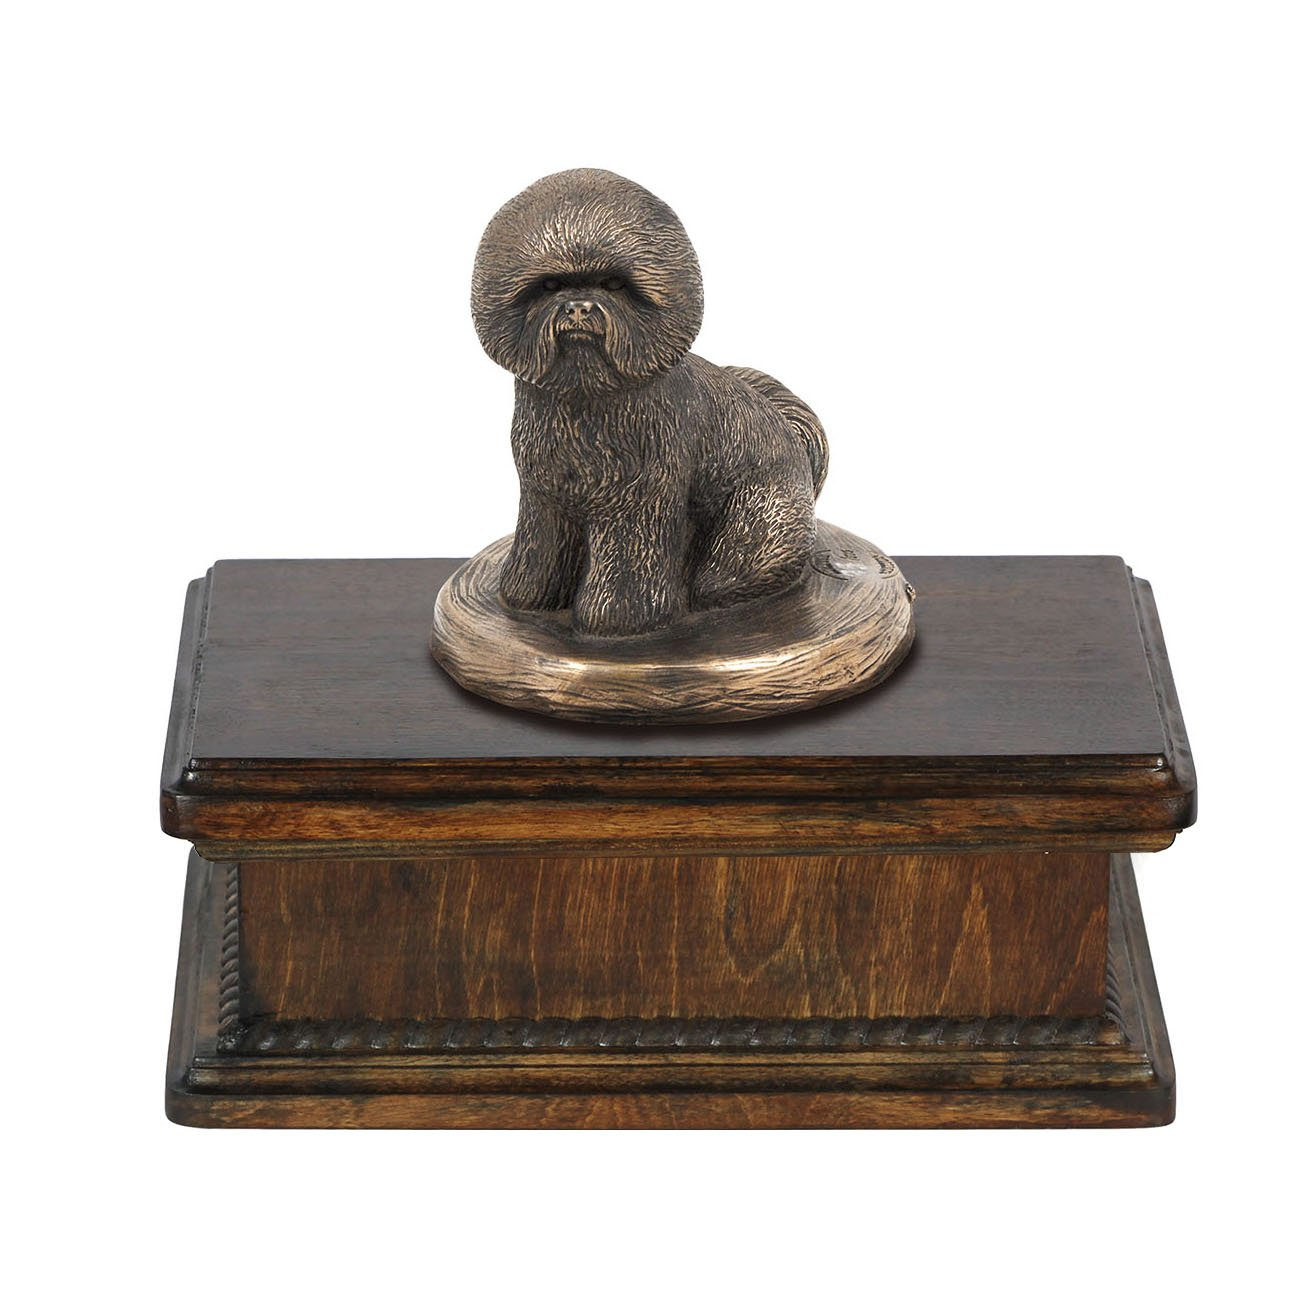 Bichon, memorial, urn for dog's ashes, with dog statue, exclusive, ArtDog